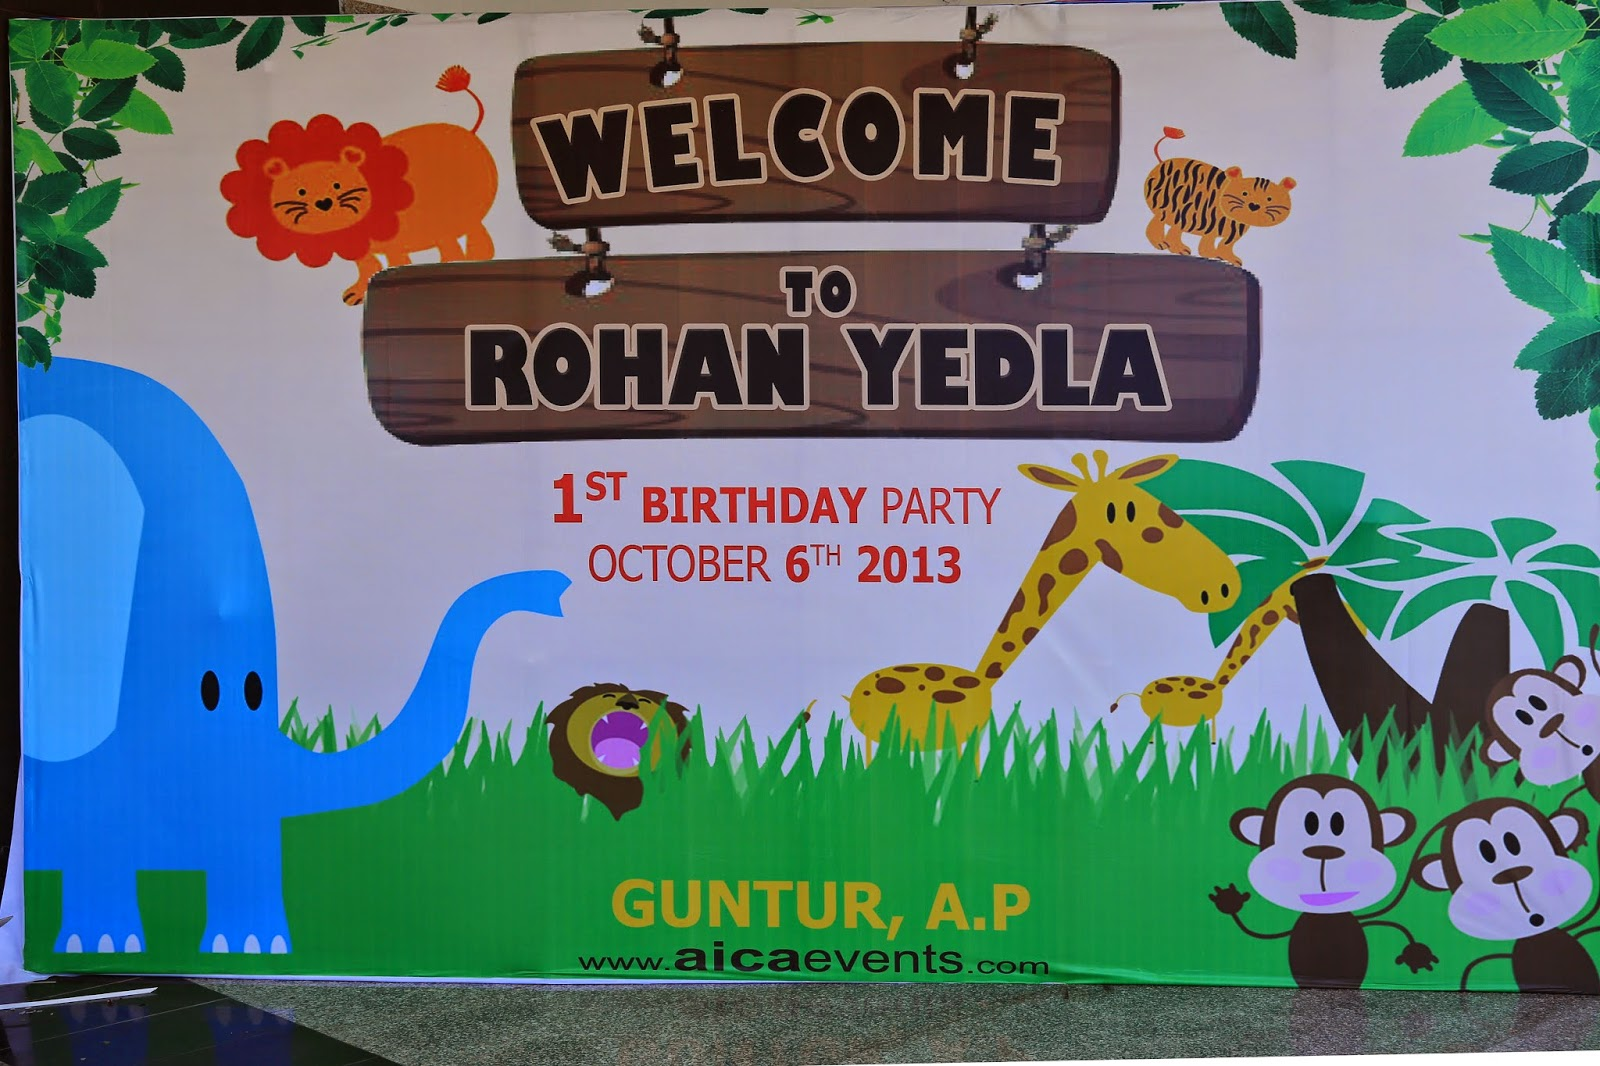 Aicaevents India Jungle Theme Birthday party Decorations